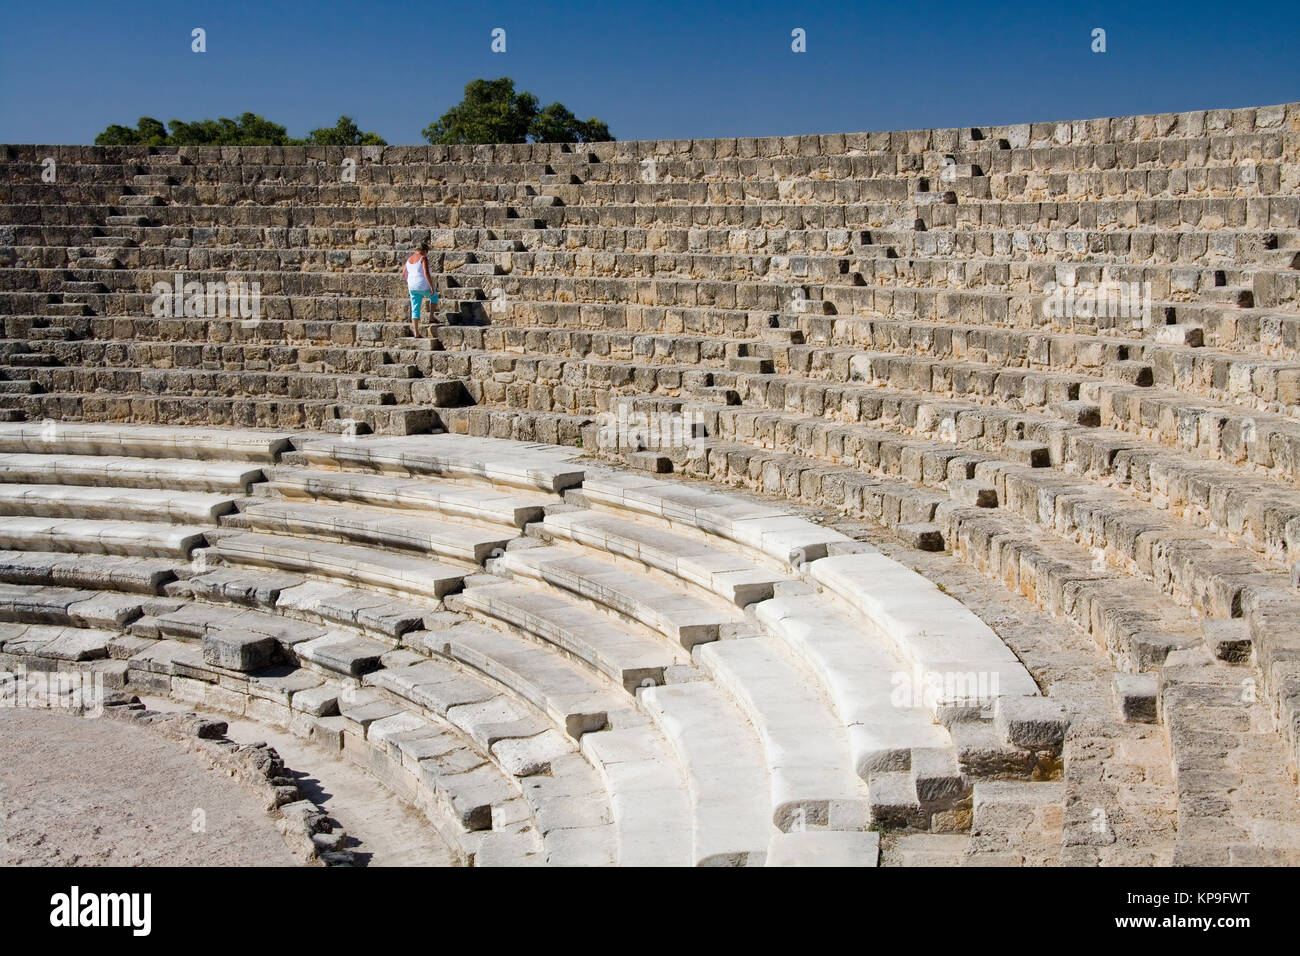 The Amphitheater at the ruins of Salimis in Northern (Turkish) Cyprus. These ruins date back to the 11th Century - Stock Image